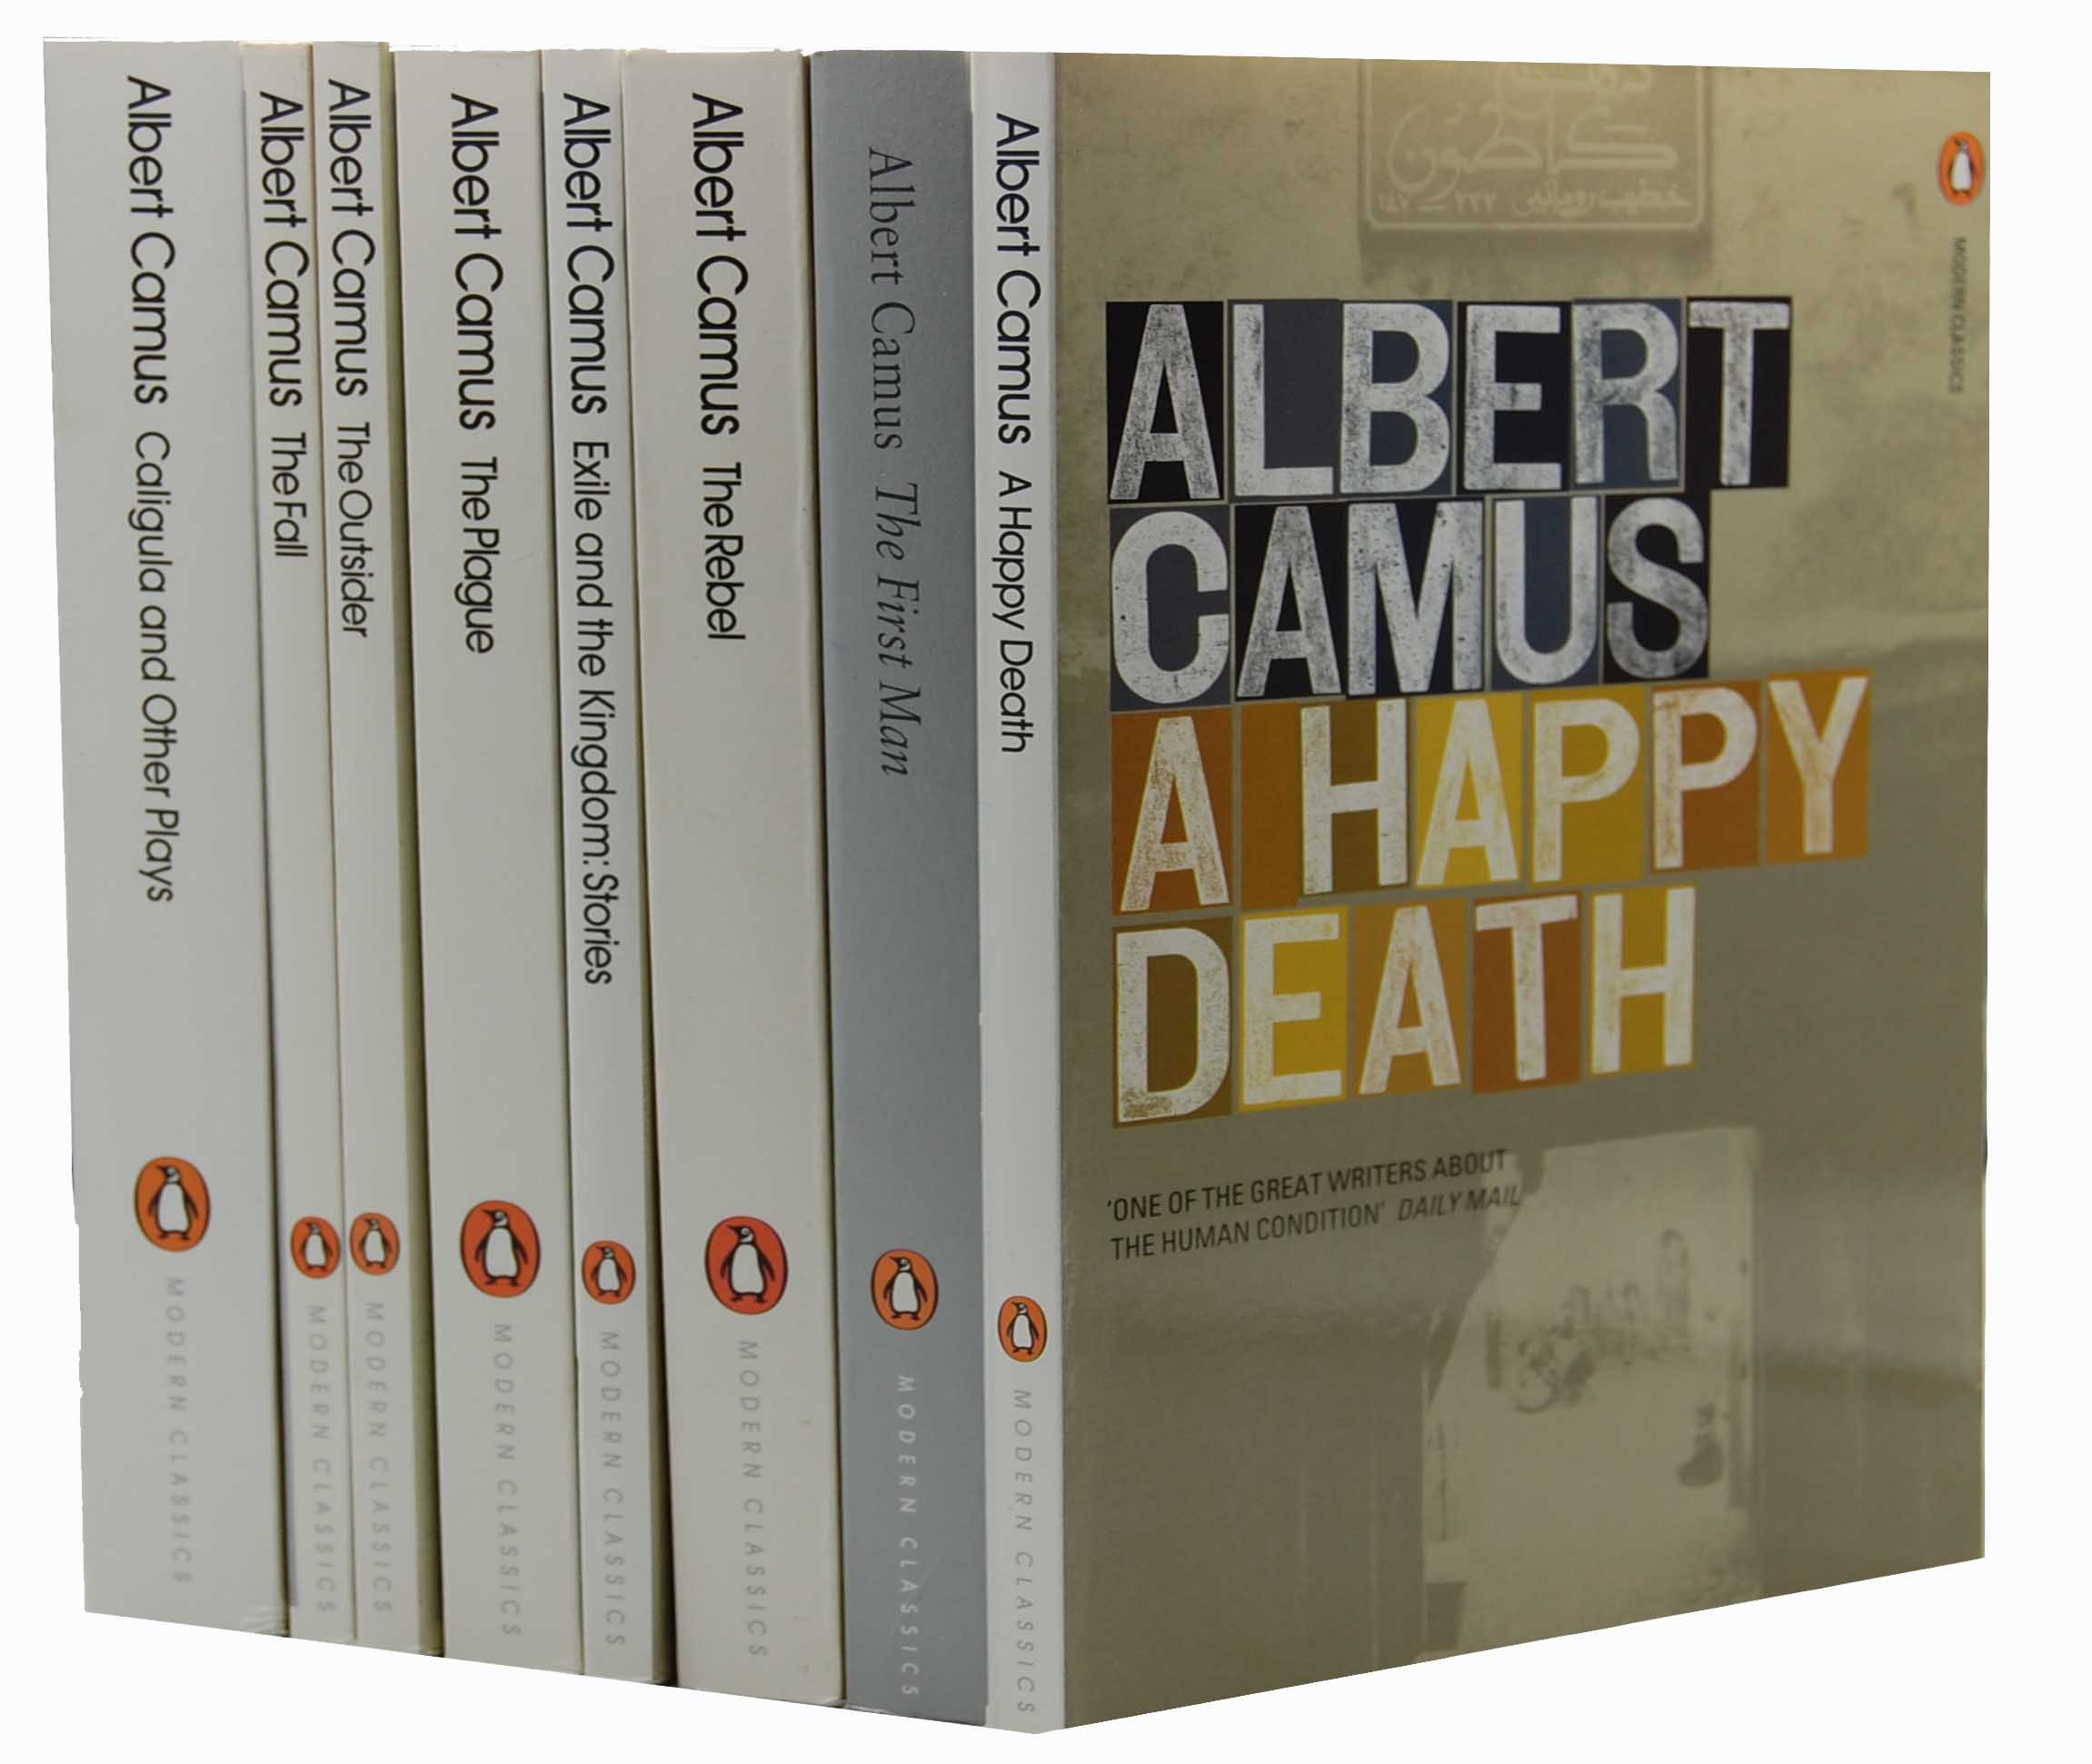 albert camus books collection set the first man the rebel albert camus 8 books collection set the first man the rebel exile and the kingdom stories the plague the outsider the fall a happy death